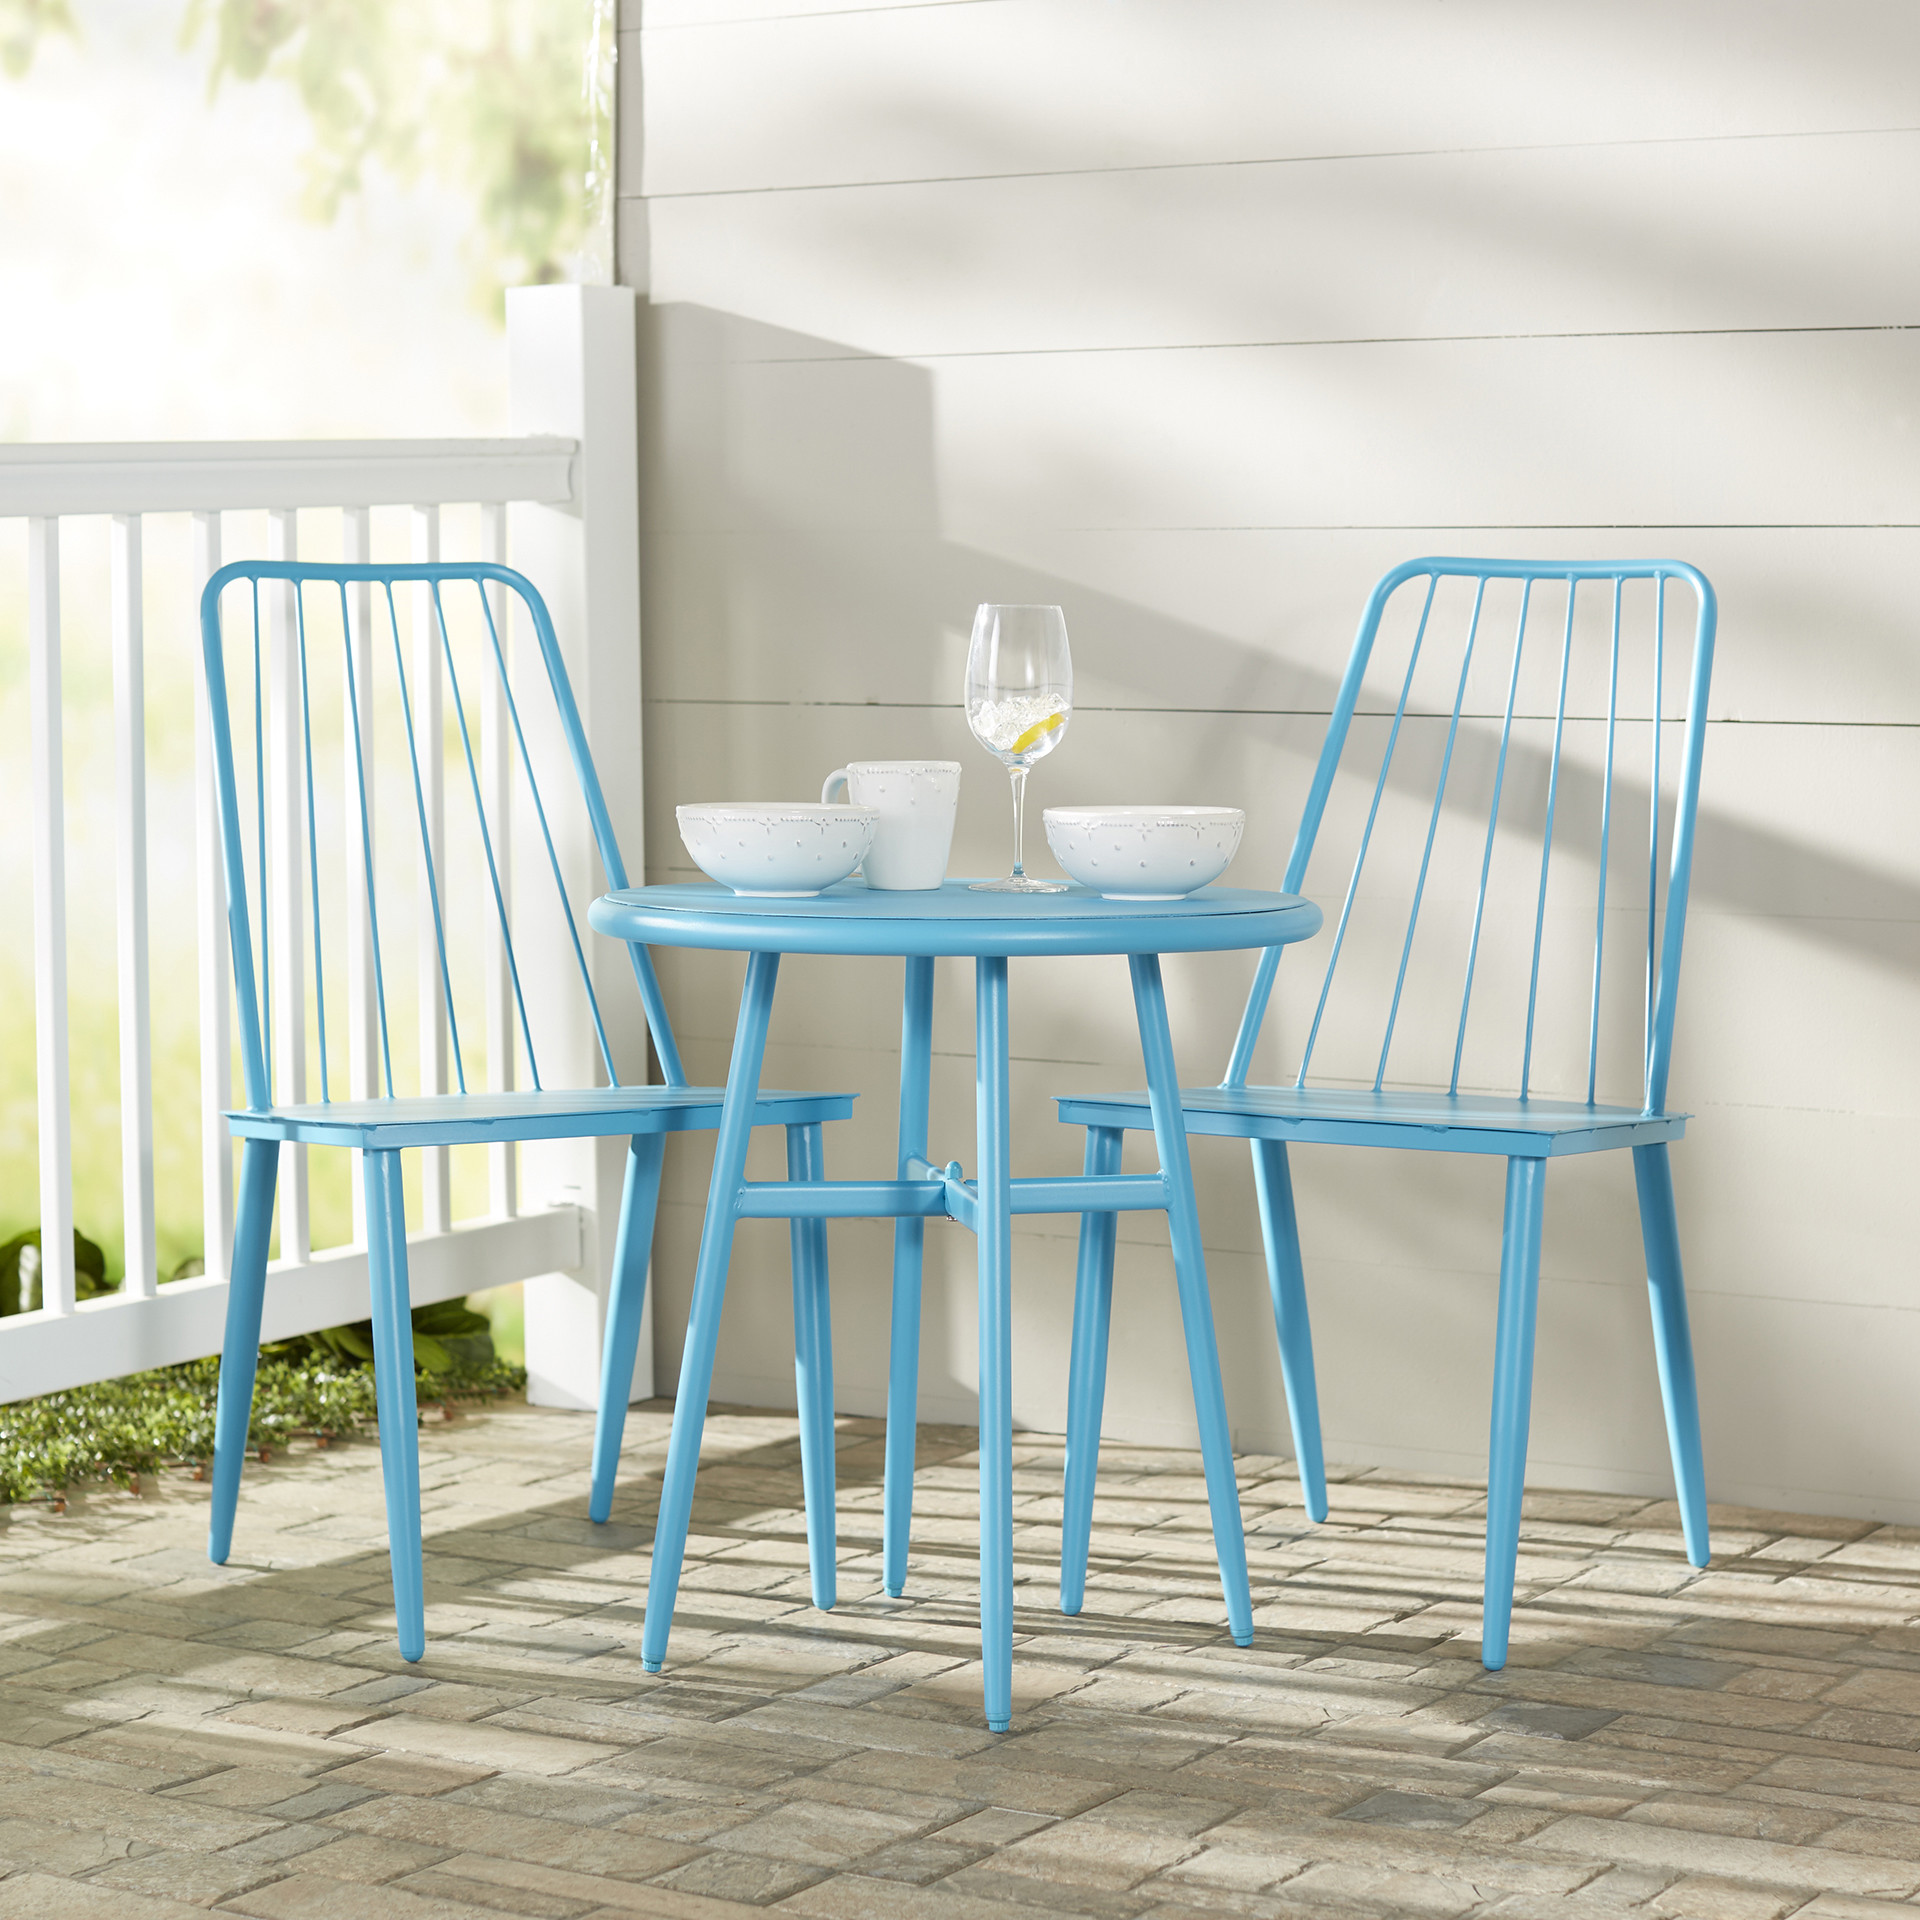 Best Outdoor Furniture: 15 Picks For Any Budget   Curbed